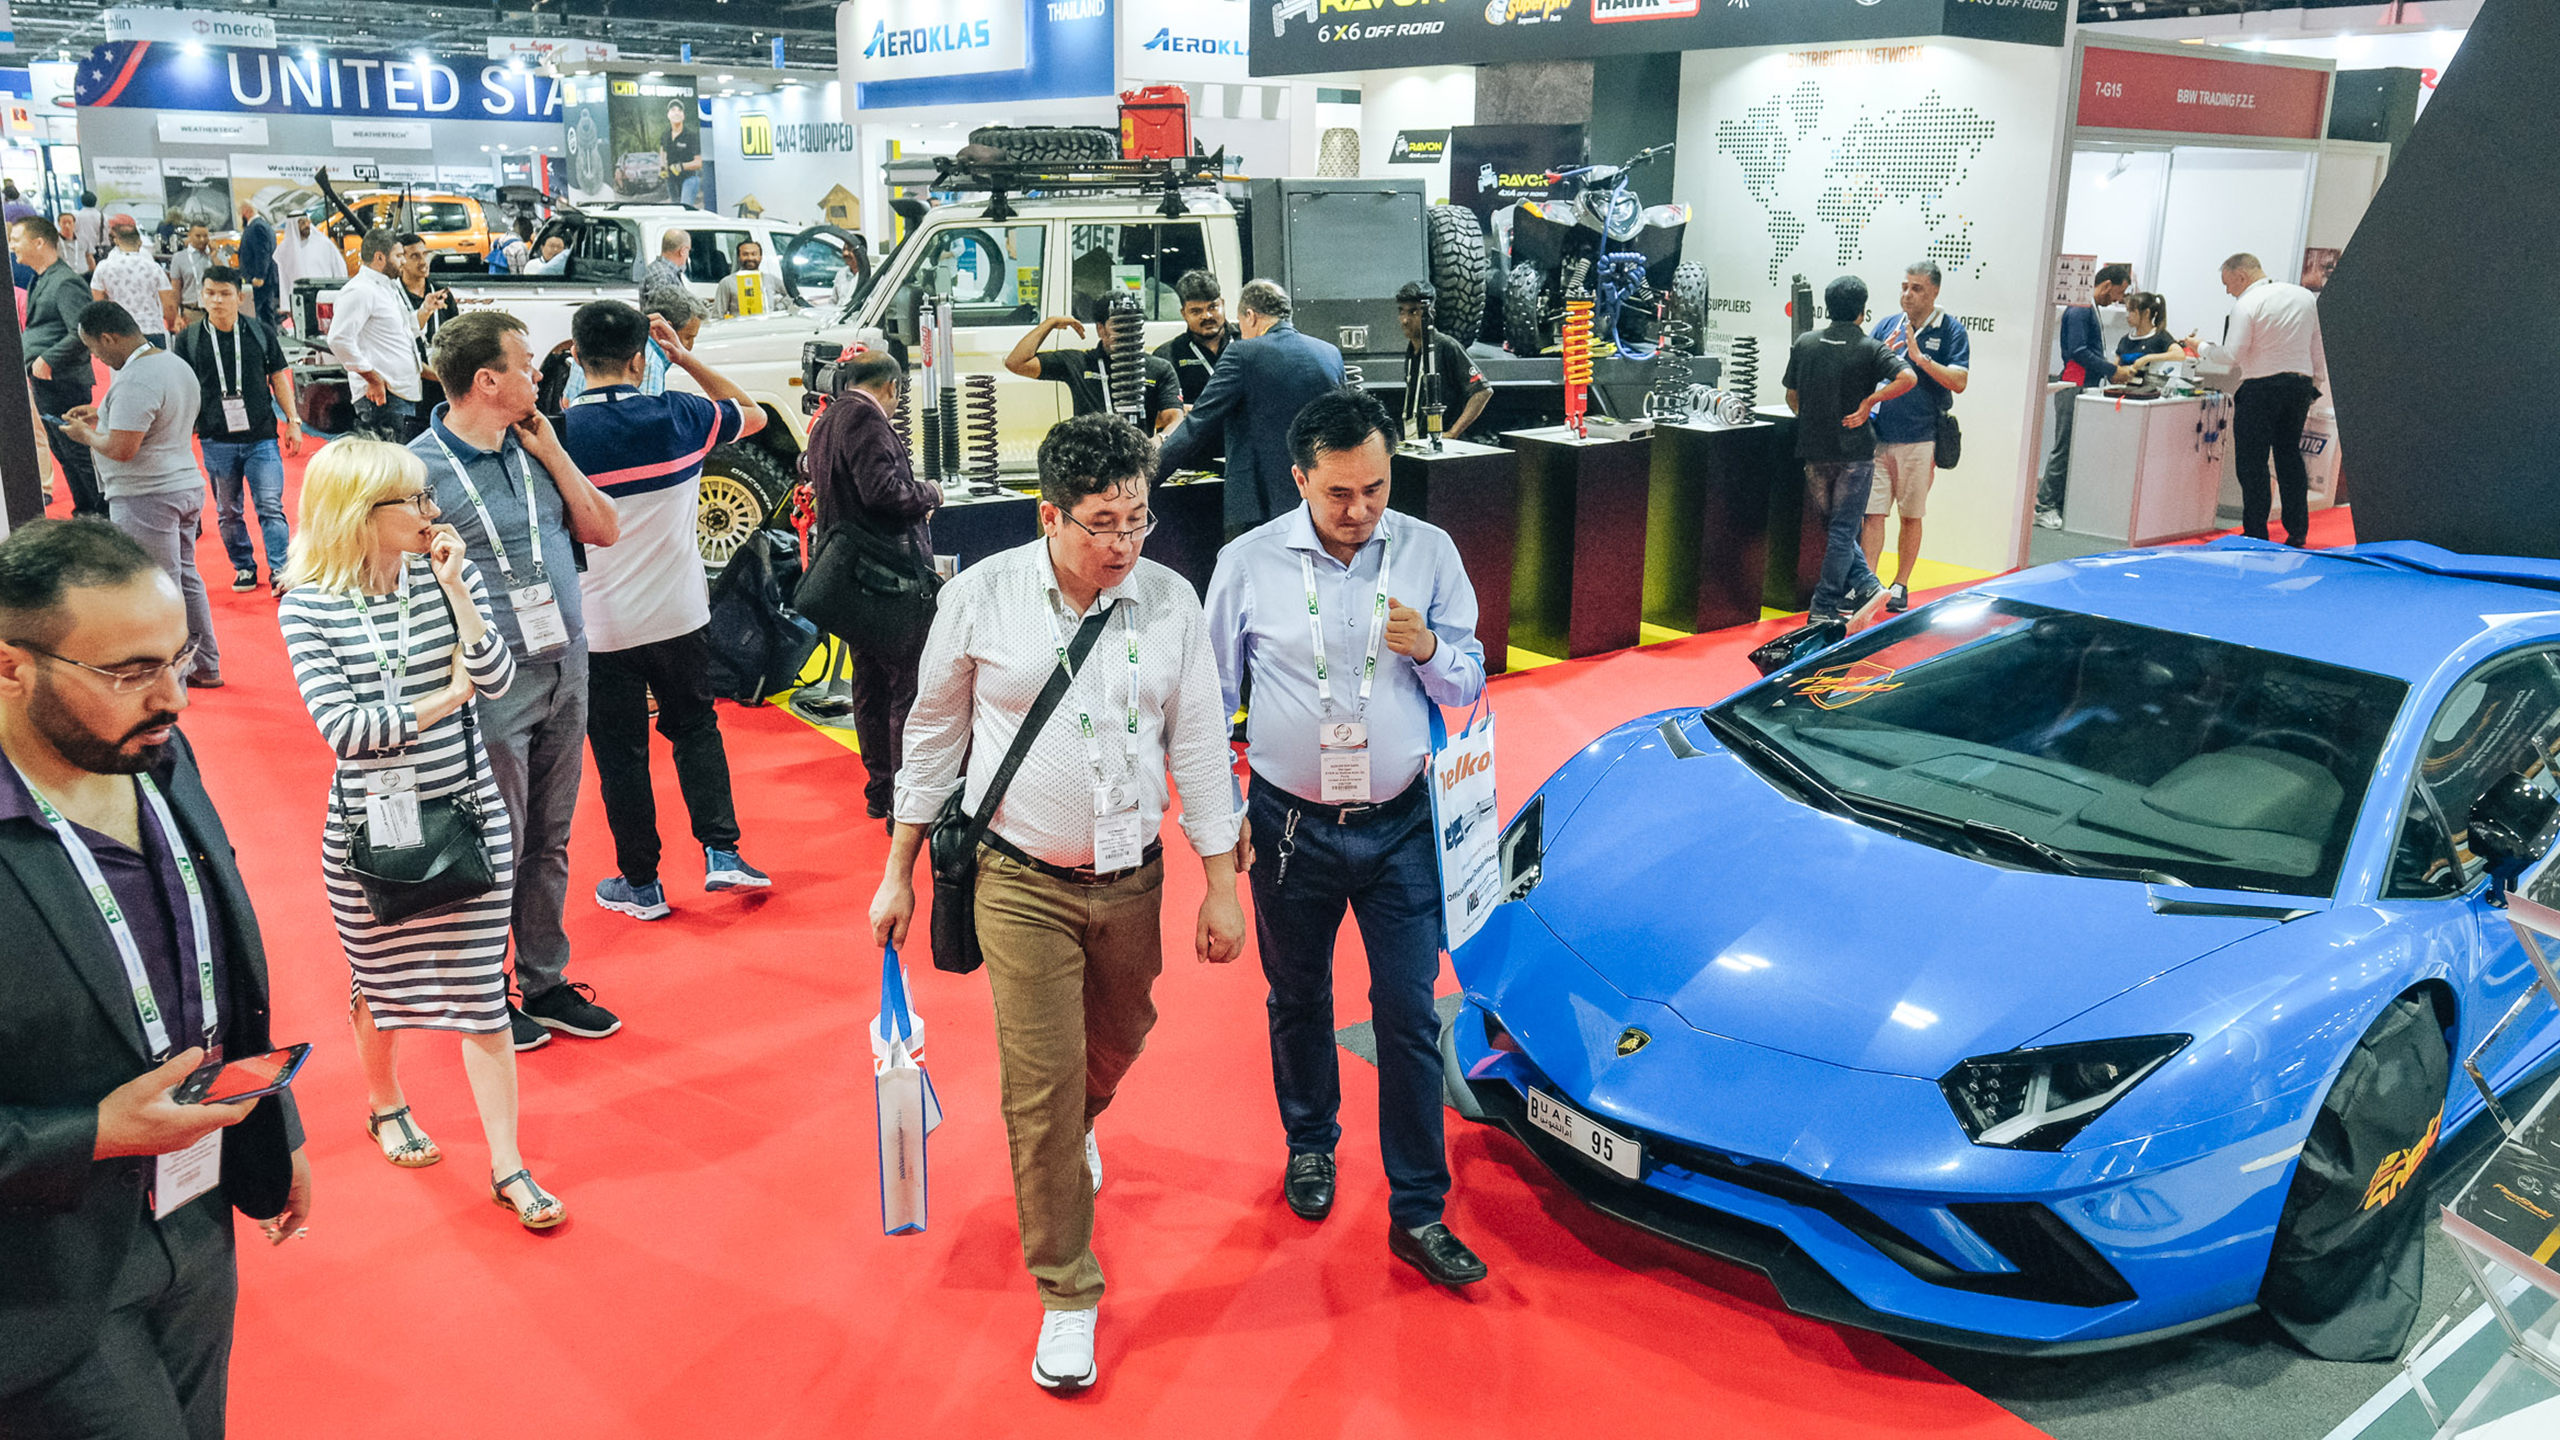 Automechanika Dubai - Leading international trade show for the